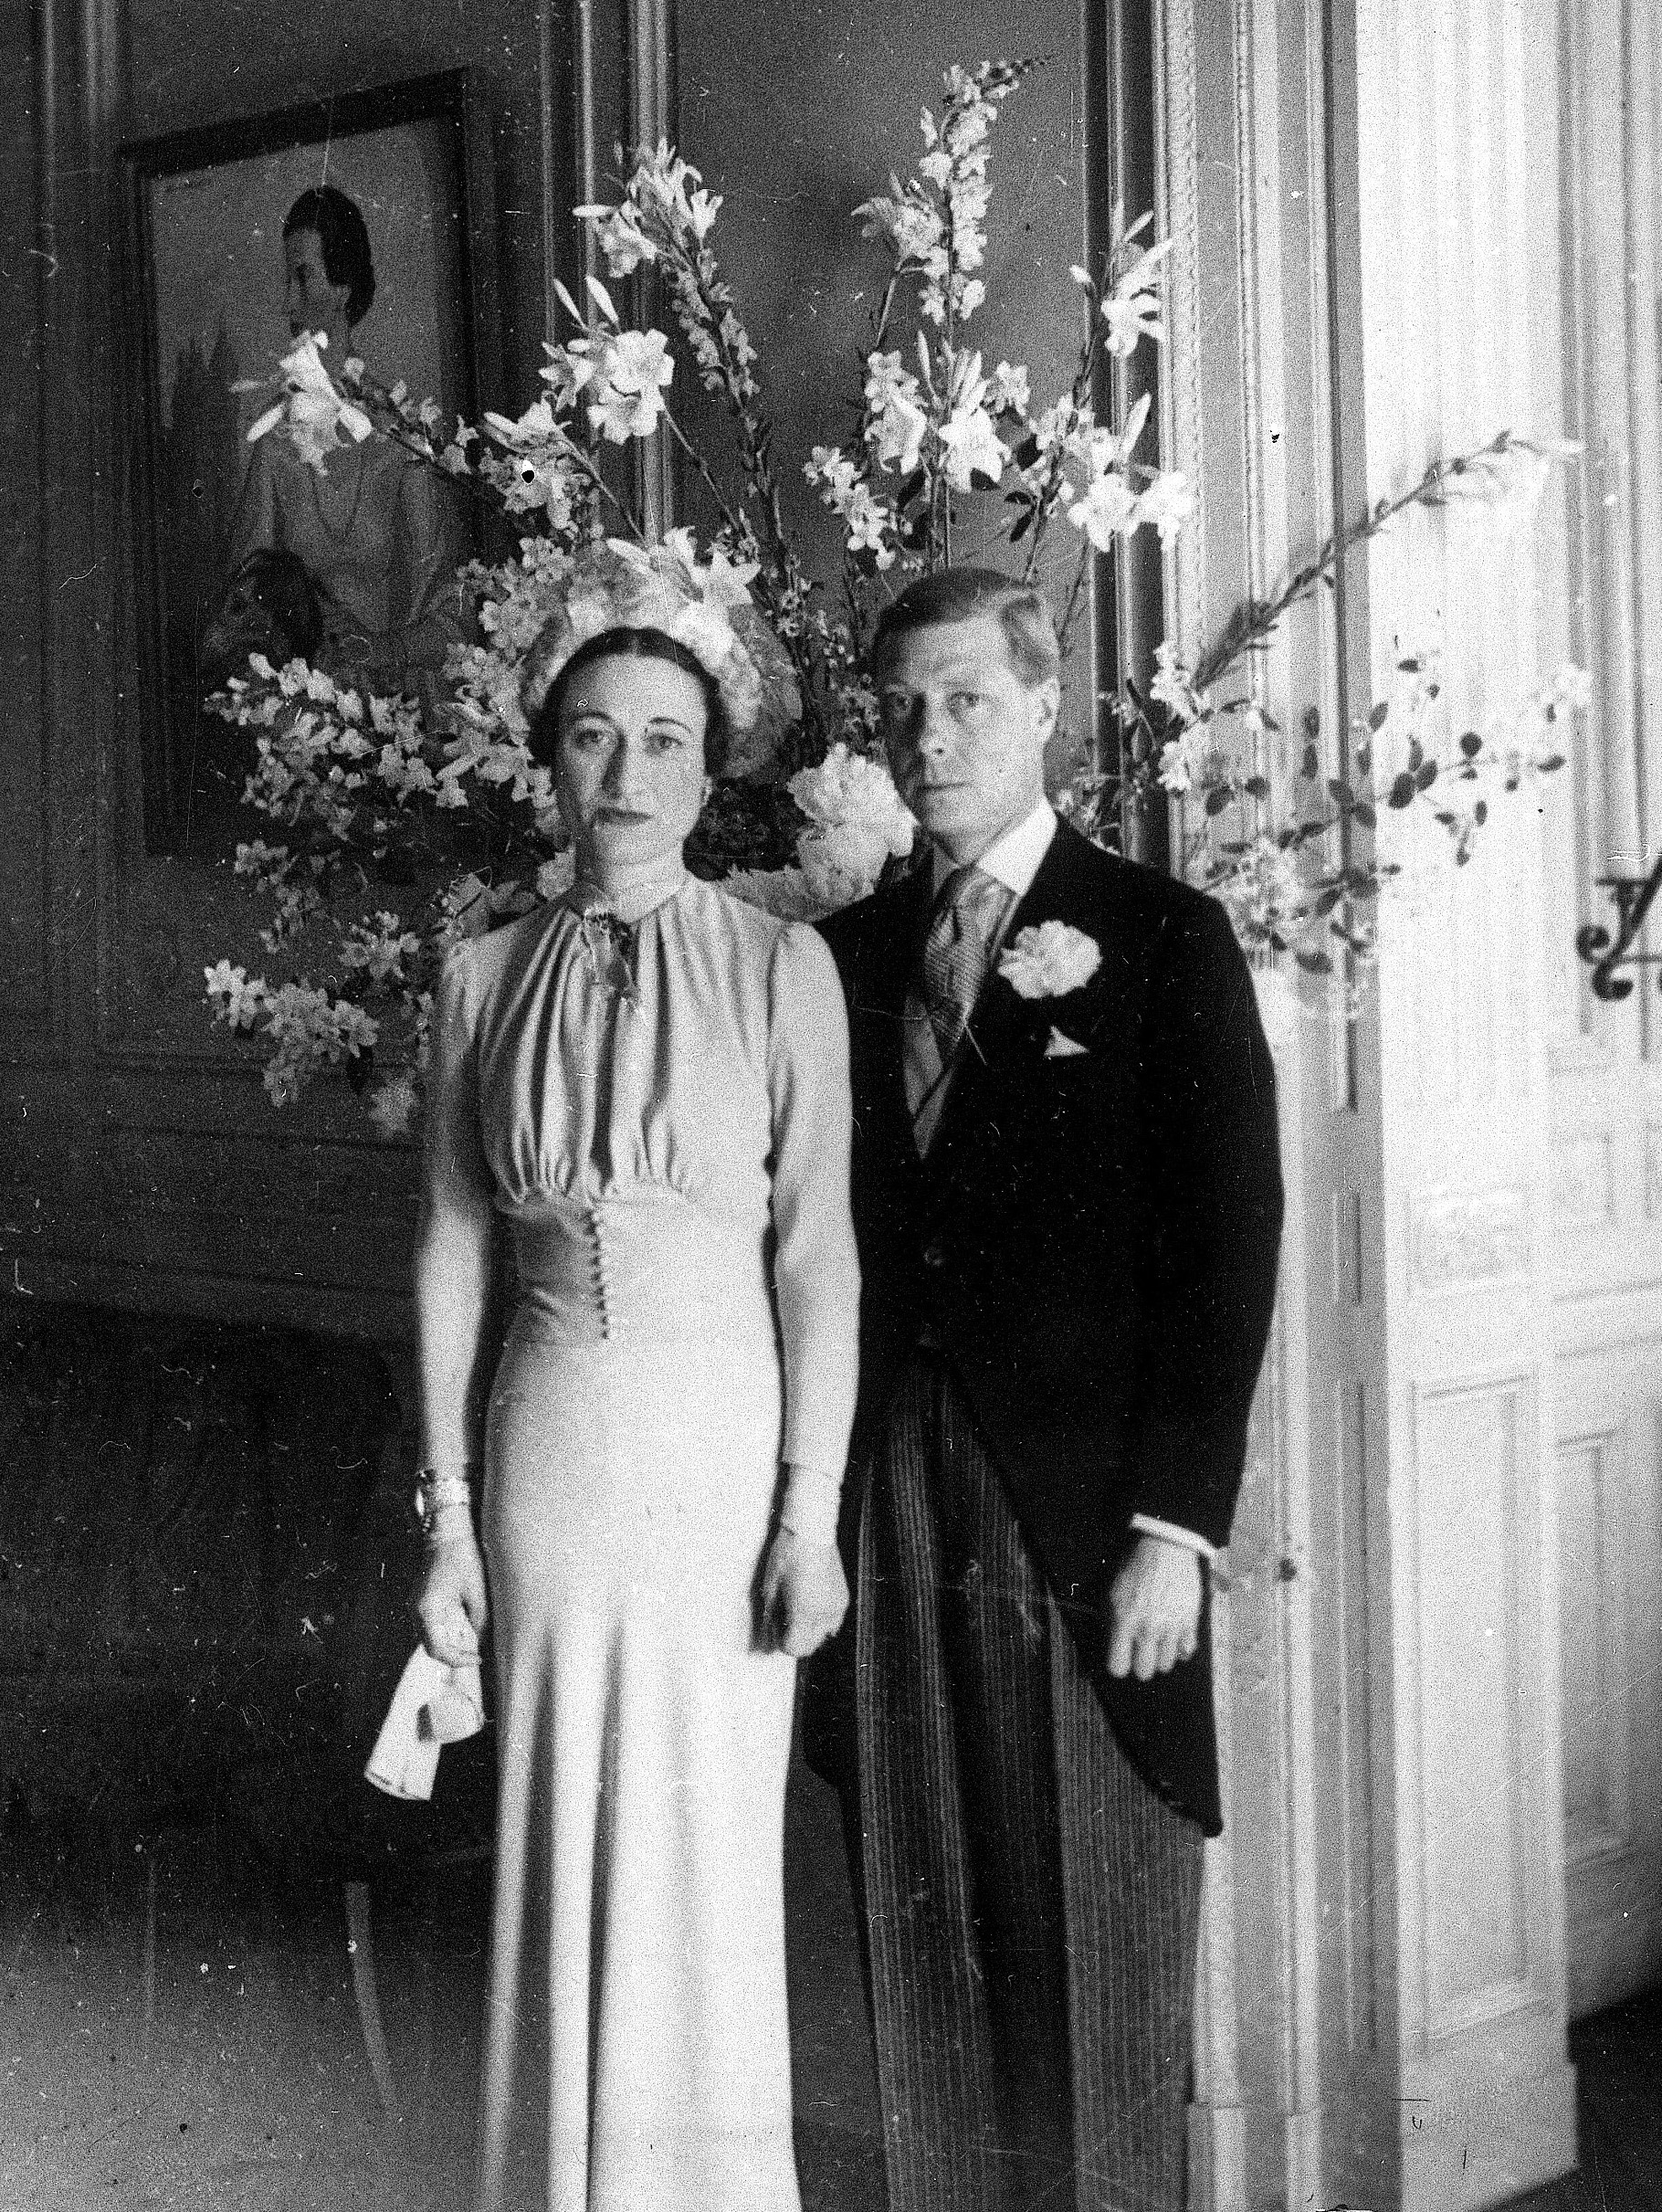 The Duke and Duchess of Windsor posing after their wedding at the Chateau de Cande near Tours, France.